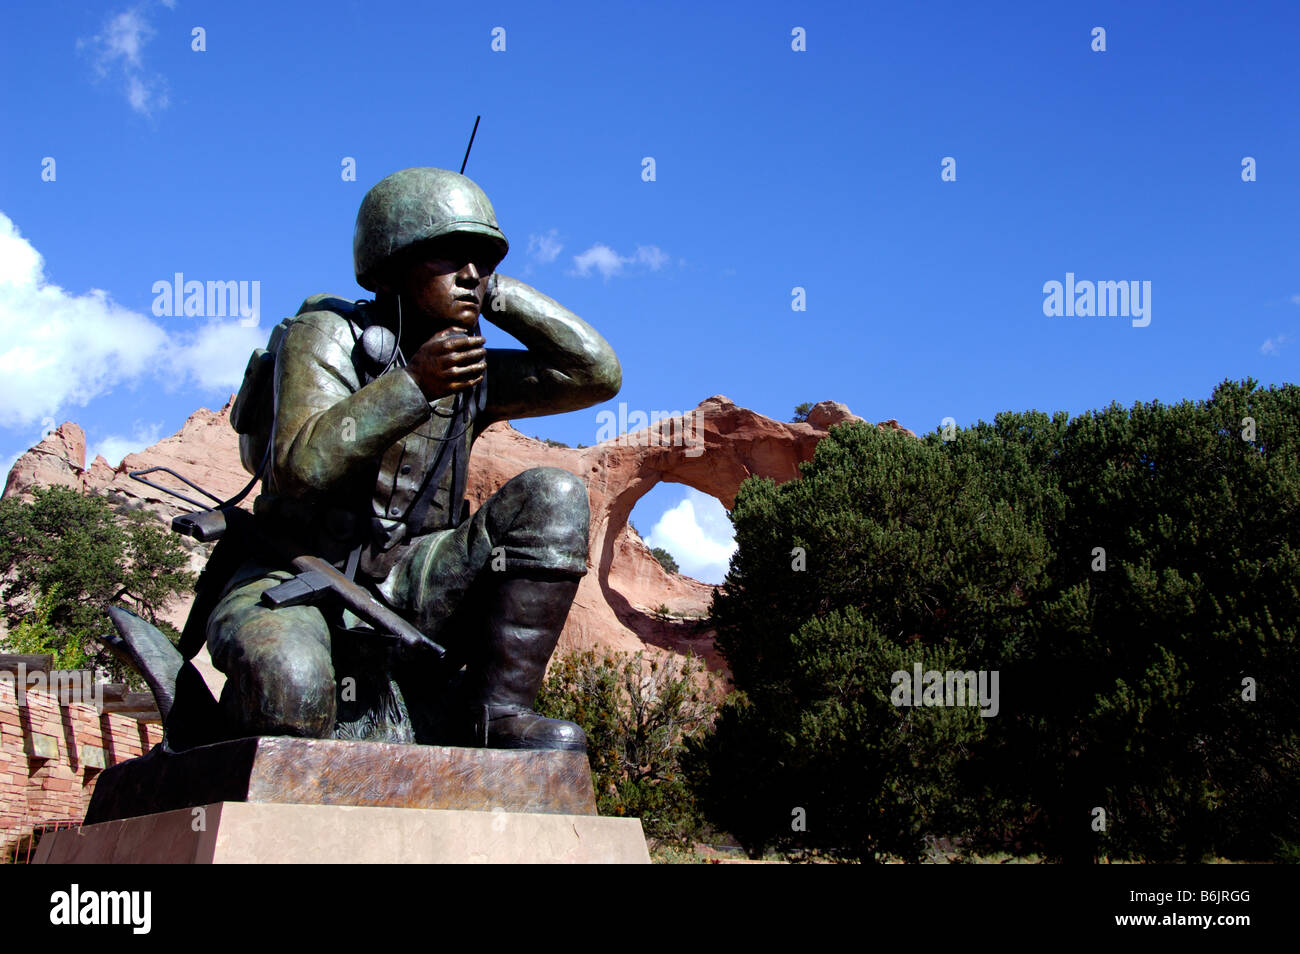 Arizona, Window Rock. Monument to Navajo Code Talkers. Capital of the Navajo nation & seat of tribal government. - Stock Image